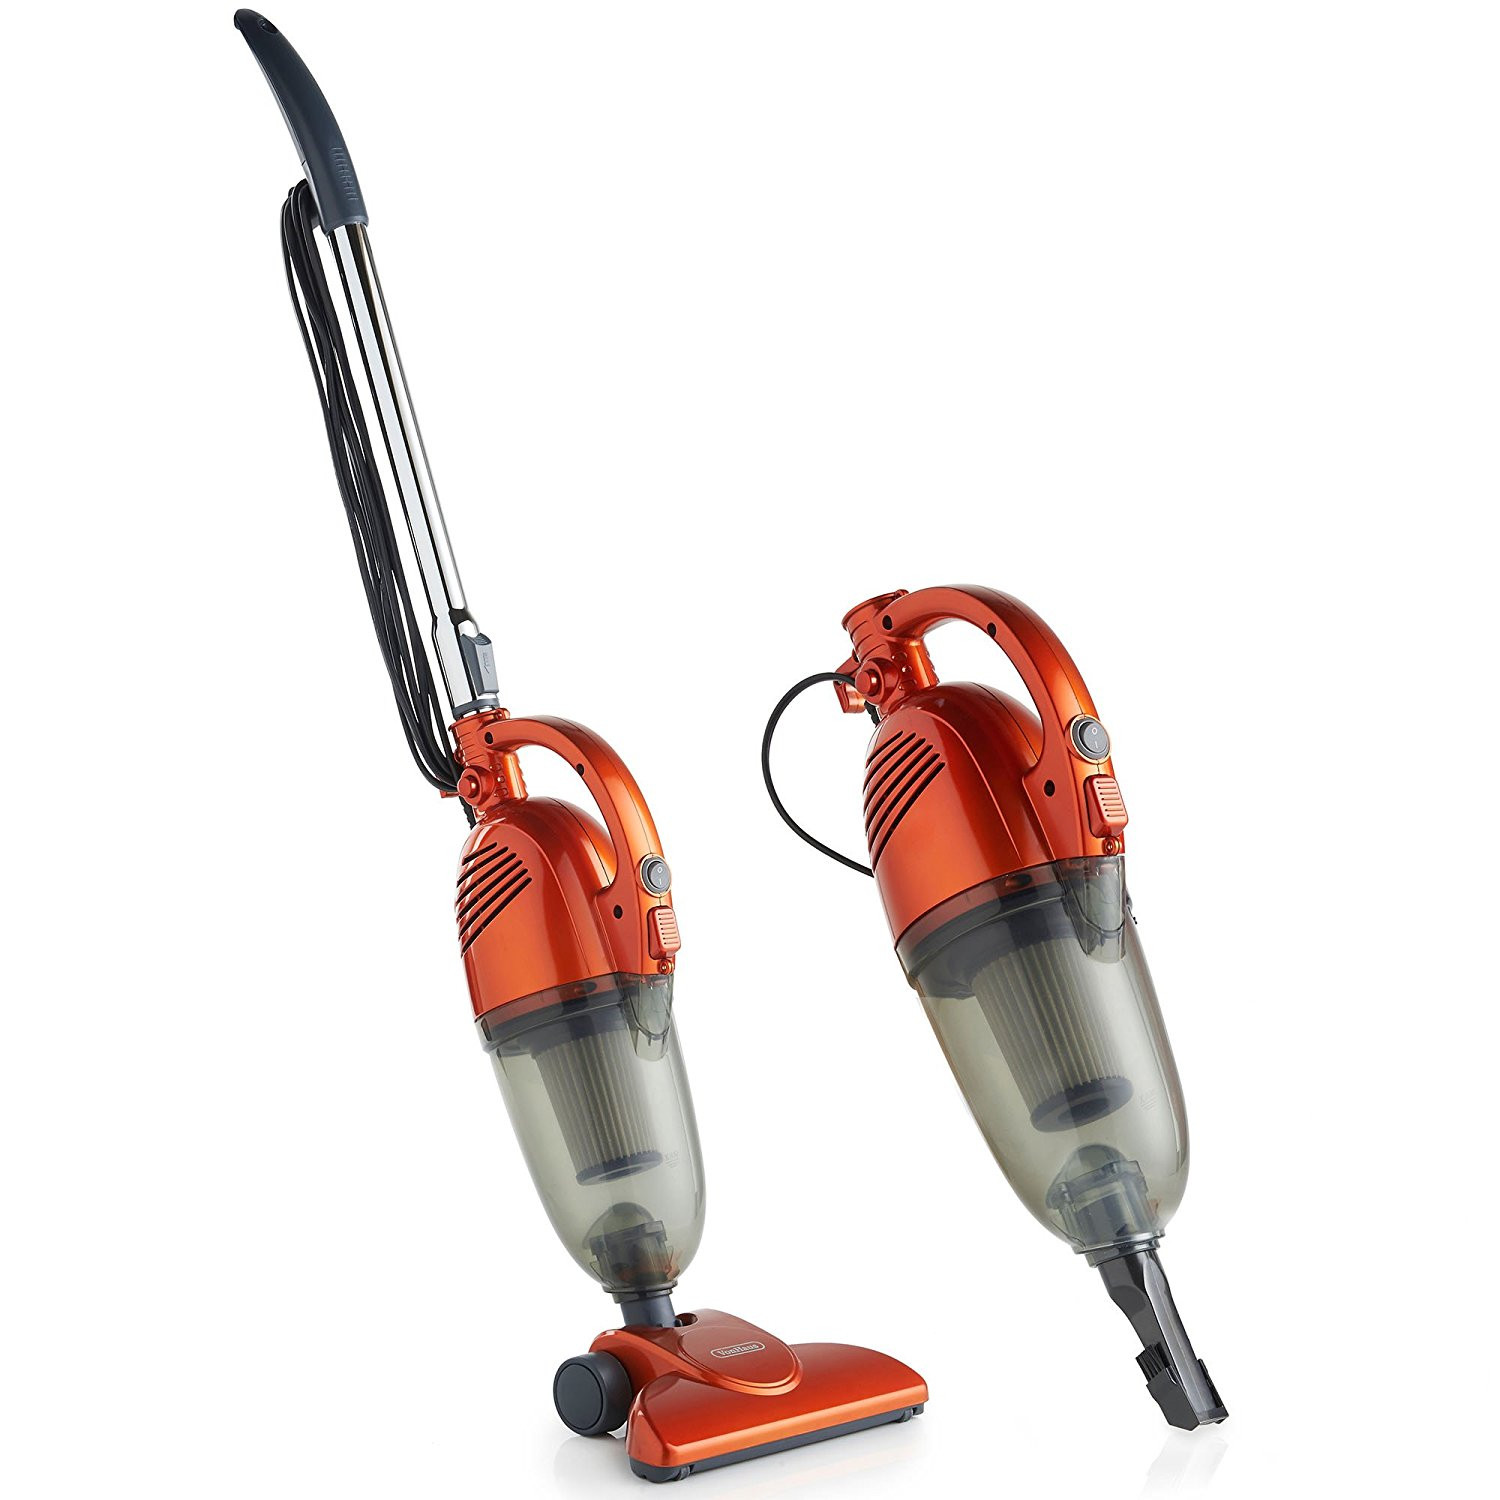 best vacuum for pet hair and hardwood floors 2015 of 10 best vacuum for hardwood floors in 2018 complete guide with vonhaus 600w 2 in 1 corded upright stick handheld vacuum cleaner with hepa